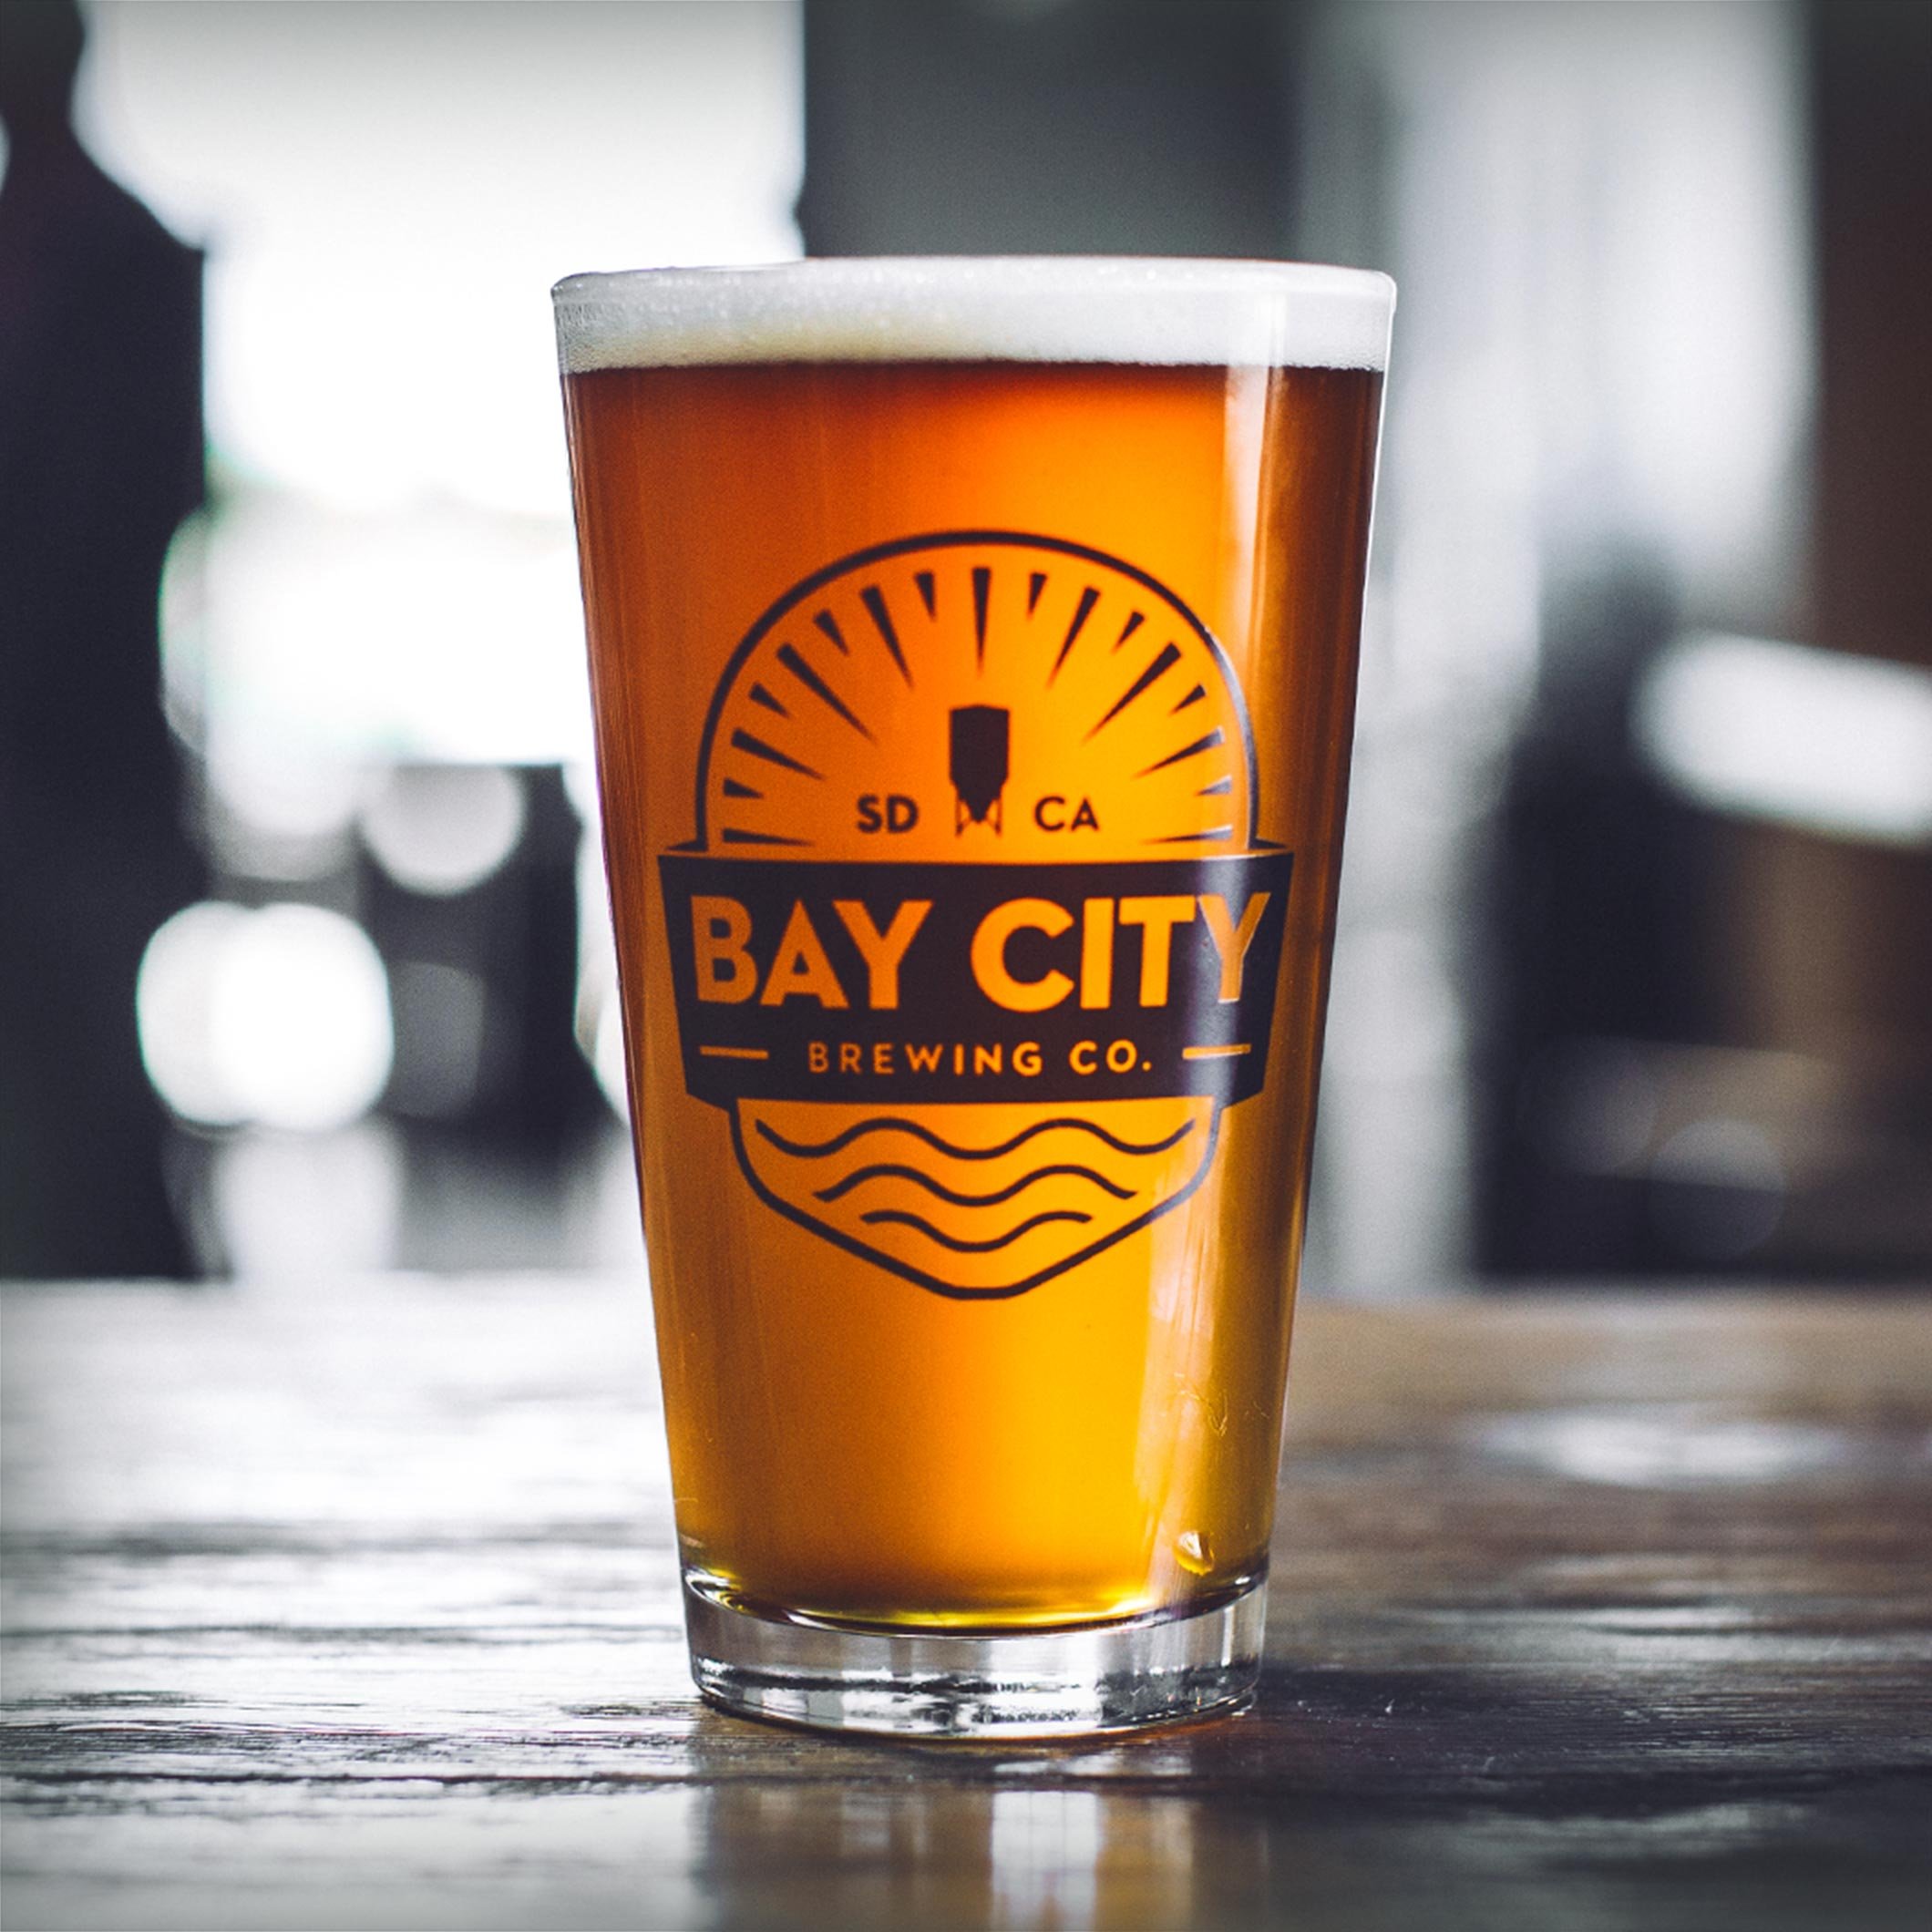 https://baycitybrewingco.com/wp-content/uploads/2019/03/bay_city_peninsula_lager_glass_2x-2.jpg